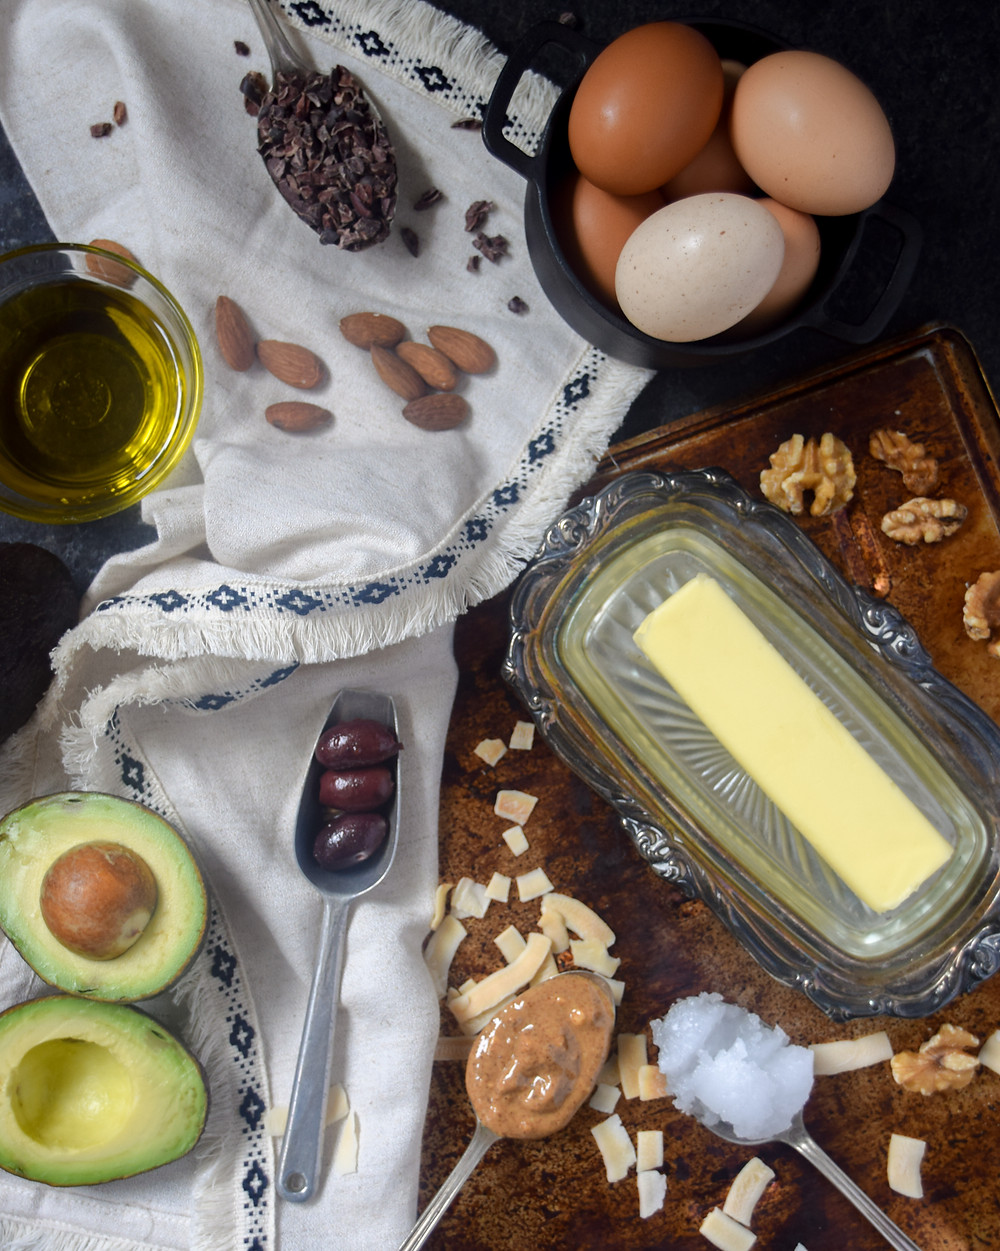 Healthy fats displayed together. Butter, eggs, avocado, nuts, oil